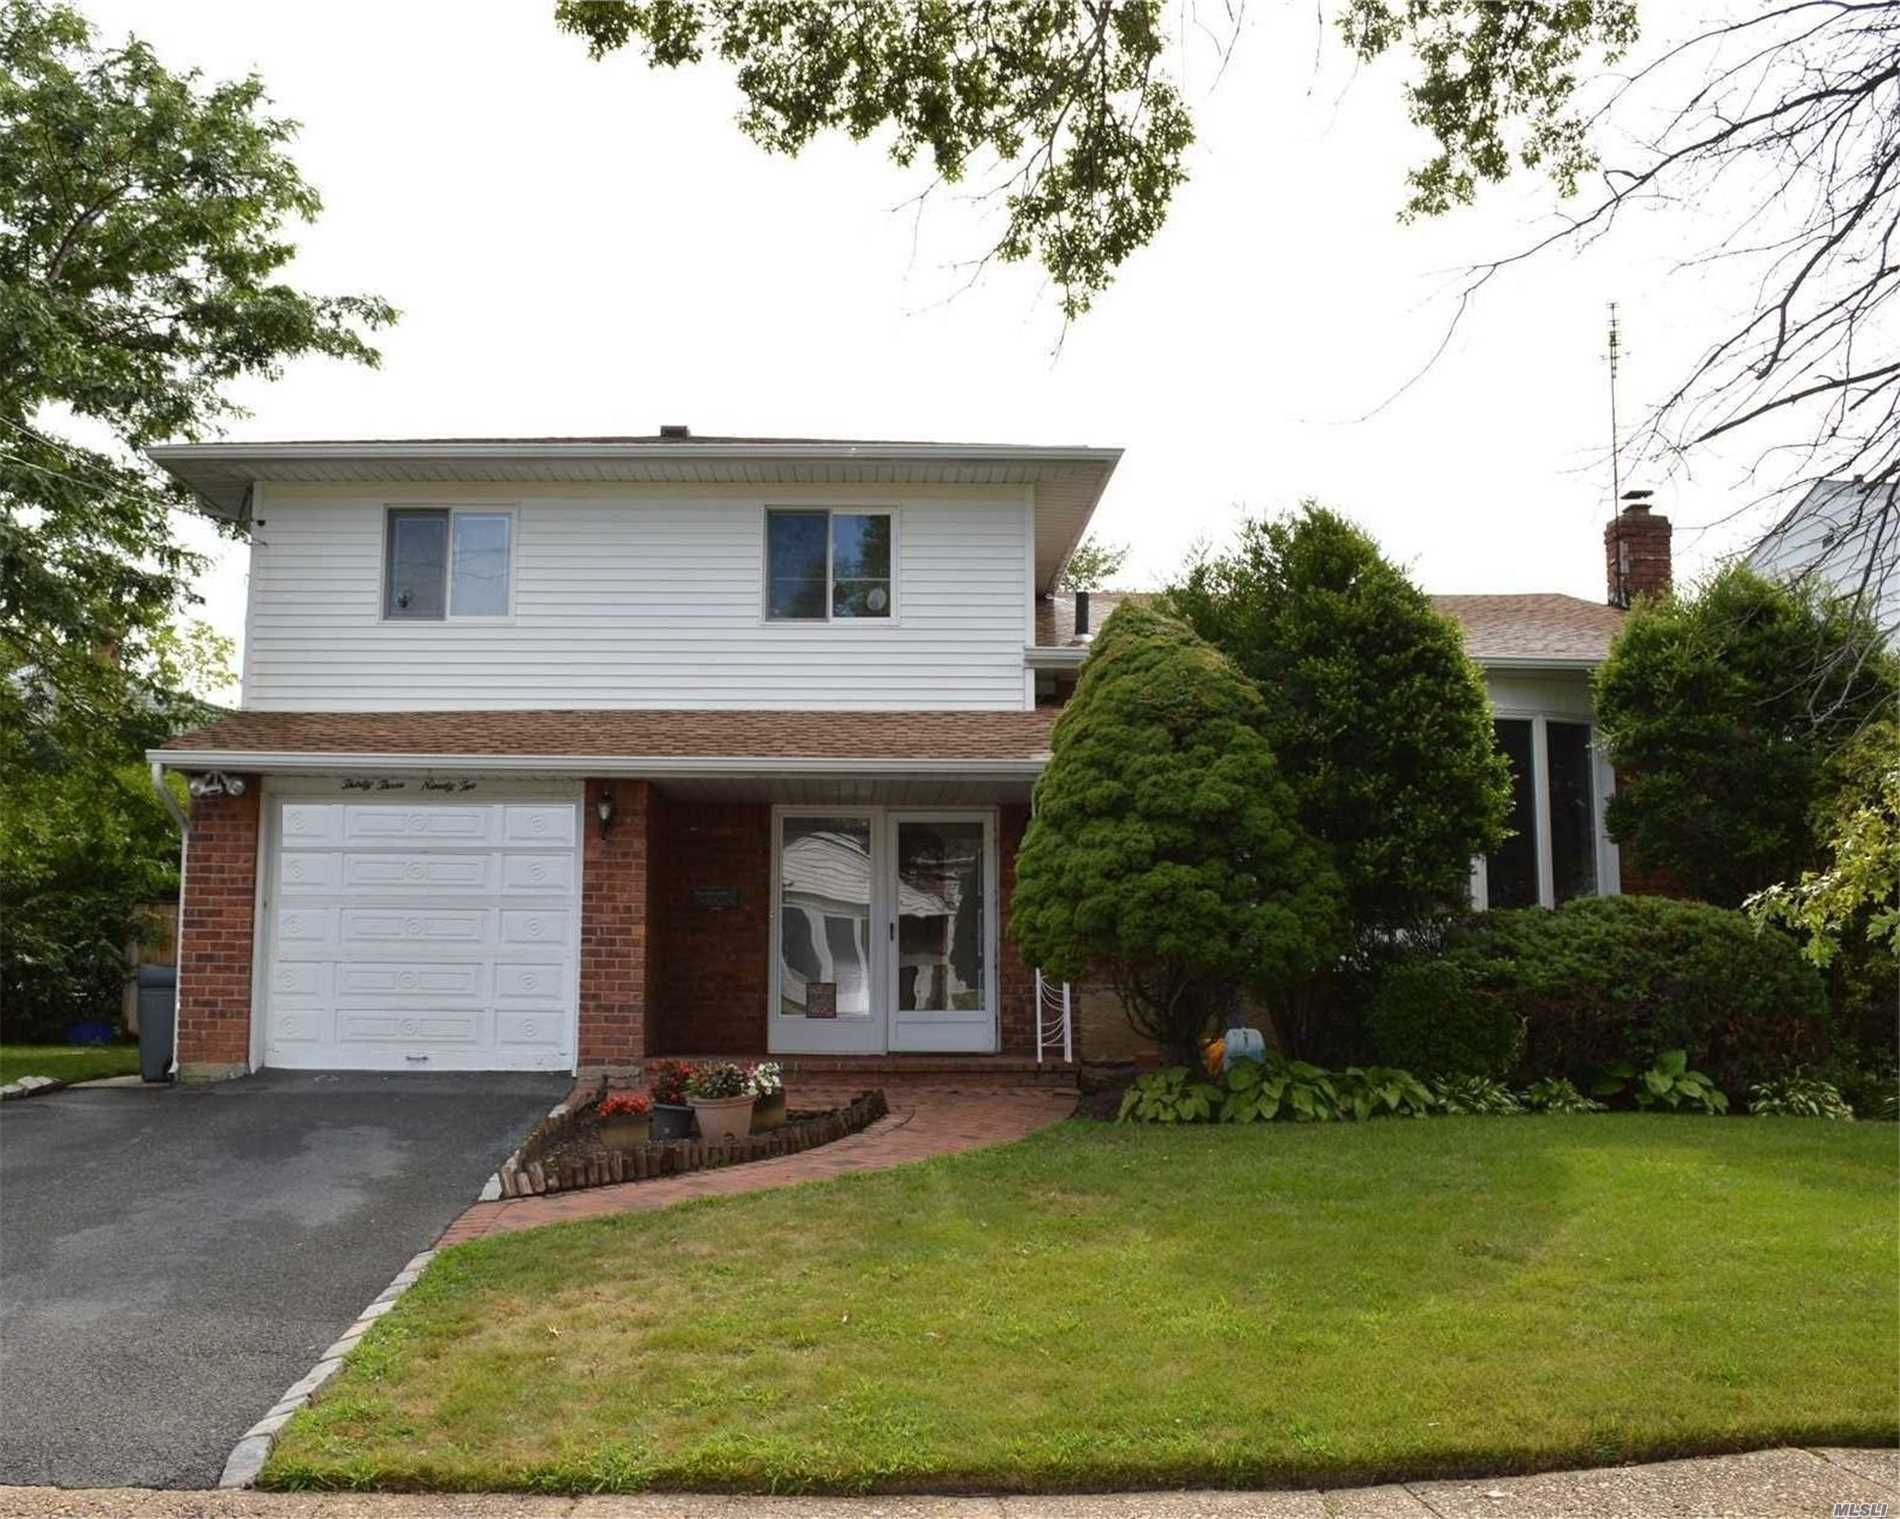 Contemp. Expanded Split, 4 Bedrooms, 2.5 Baths, Eik With Stainless Steel Appliances And Sky Light, Sliding Glass Doors Leading On To The Deck, Large Formal Dinning And Living Room, Full Finished Basement With 2 Huge Walk-In Closets, Laundry Room, 1 Car Att. Garage, Ing. Sprinkler System.